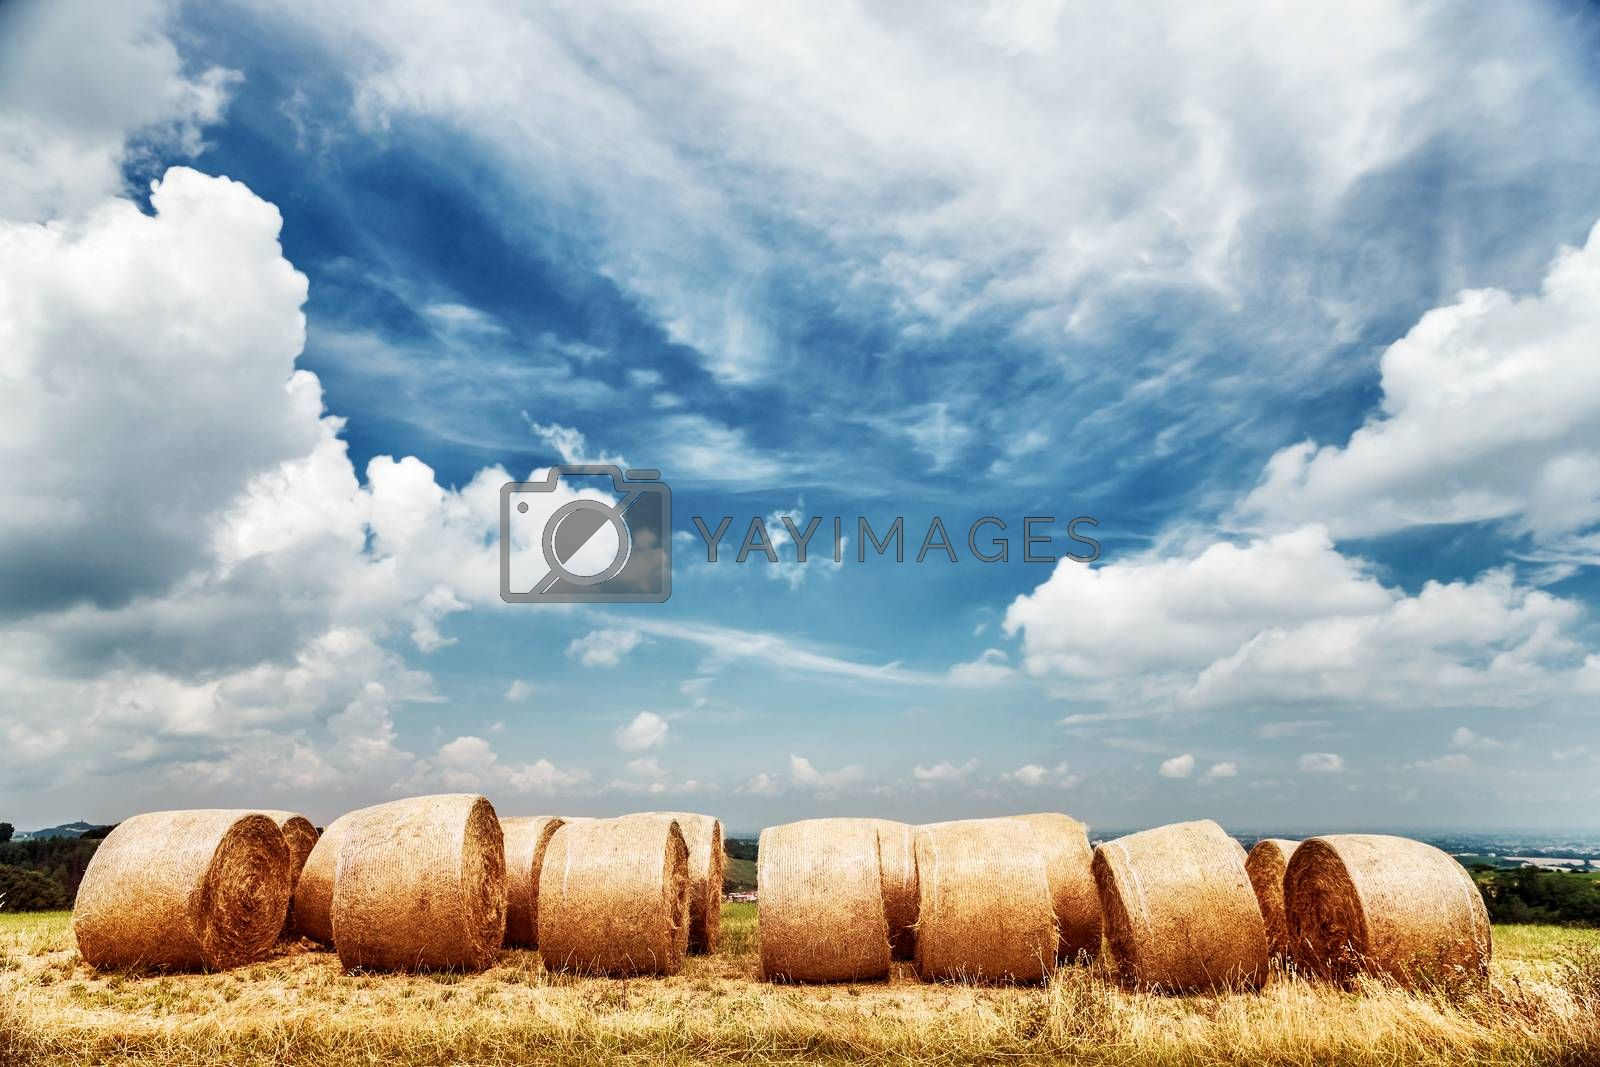 Wheat field landscape, dry bales over cloudy fall sky background, autumnal harvest season, farming fields, beautiful golden haystack, agriculture industry, Italy